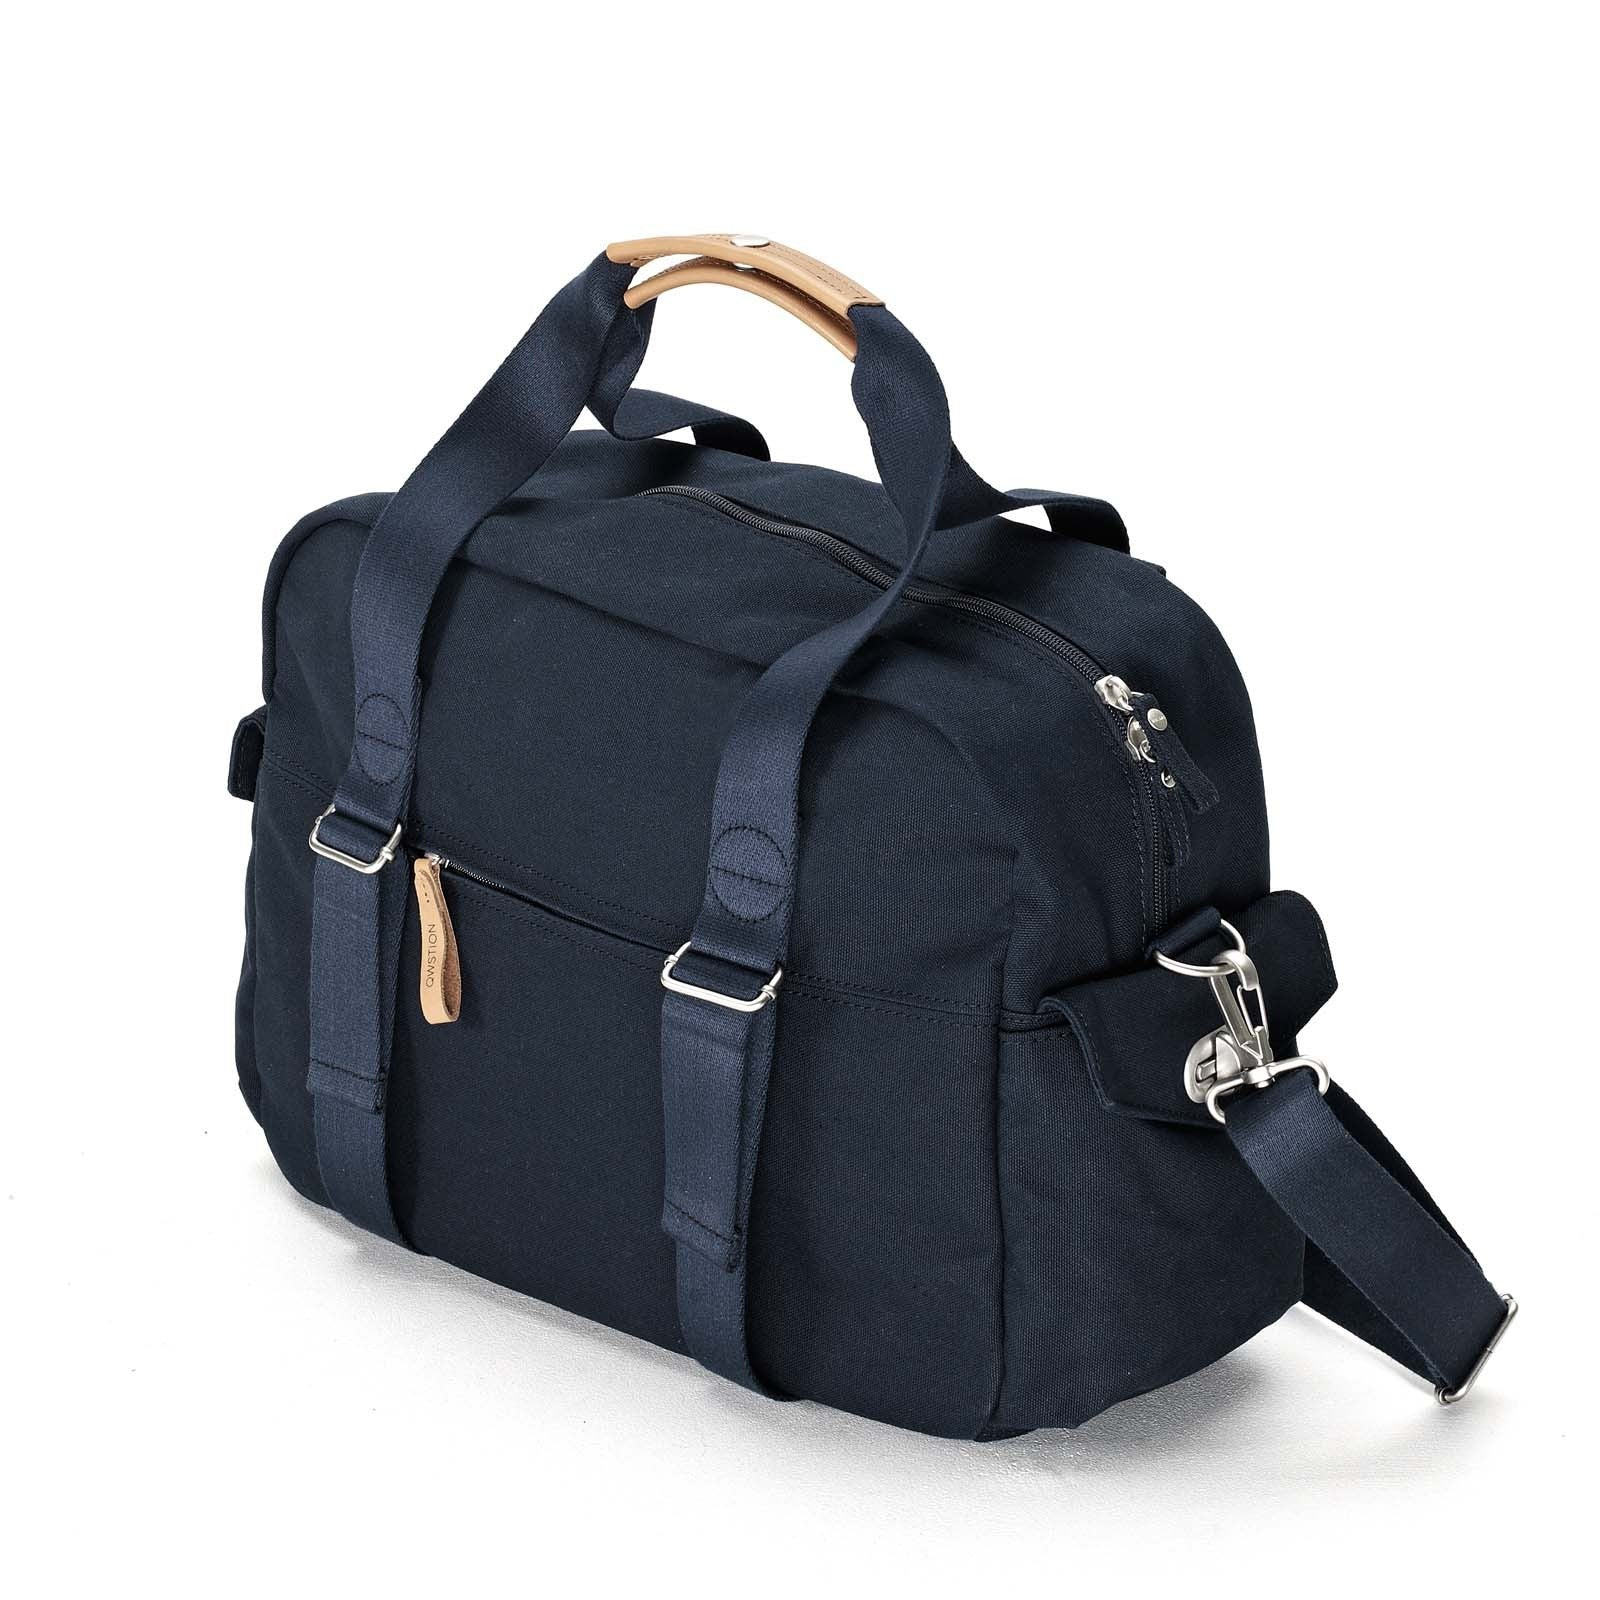 Overnighter Organic Navy Qwstion